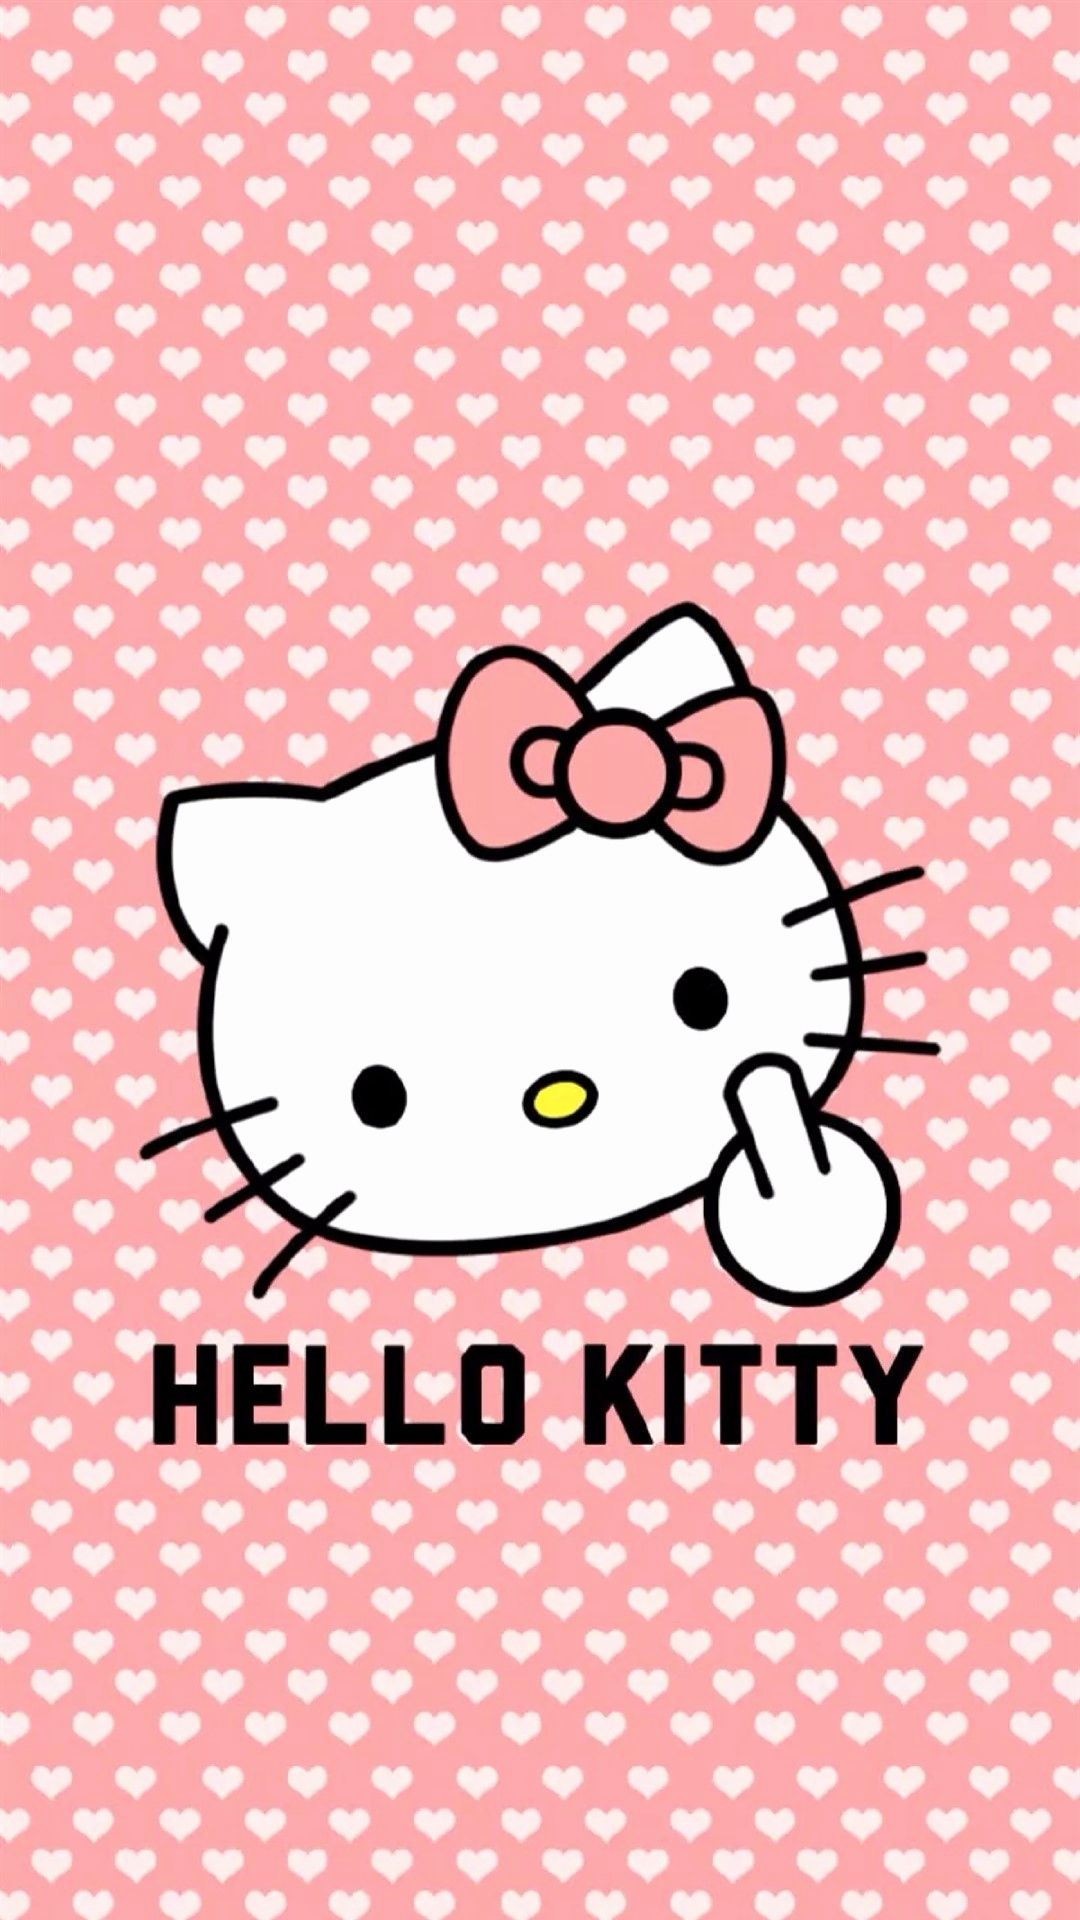 Hello Kitty wallpaper for iPhone